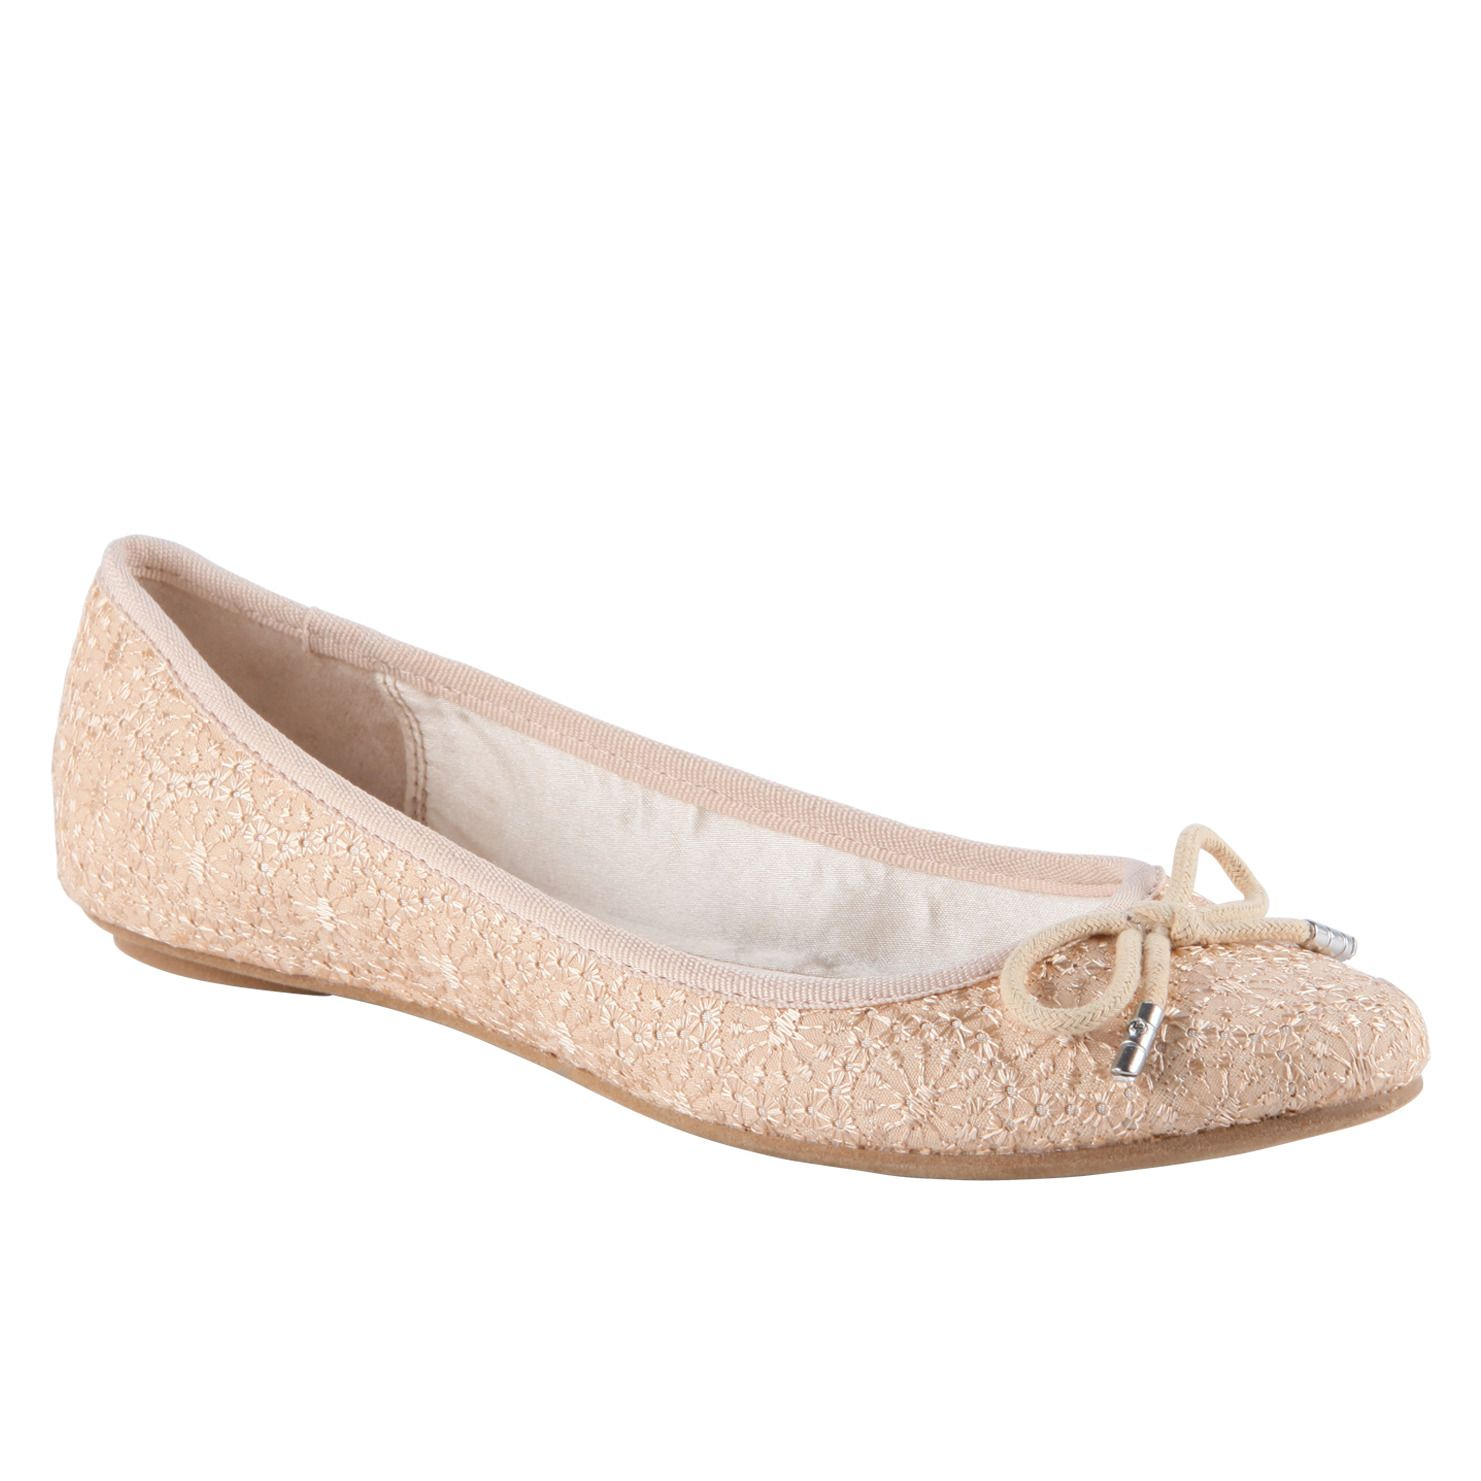 Bridal Shoes Aldo: Flats/ballerina For Your Wedding Shoes? Pale Pink Round